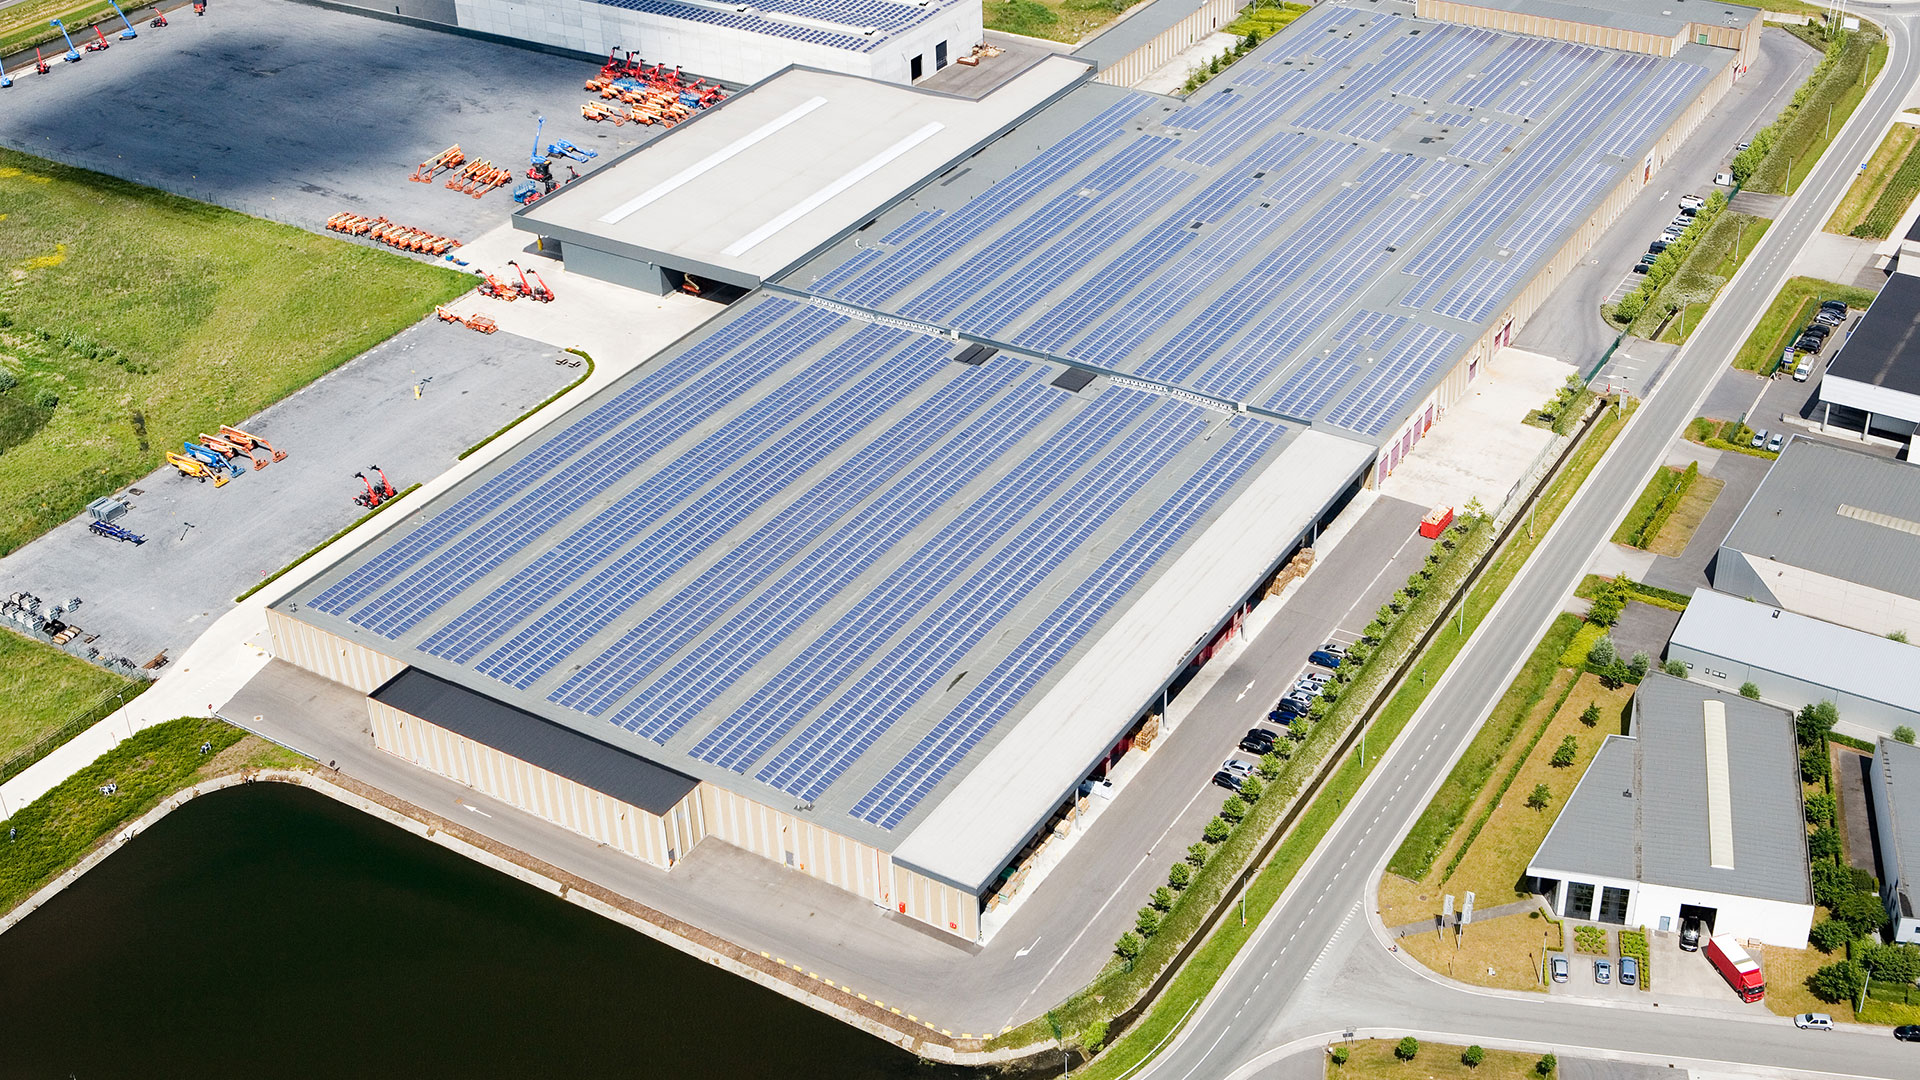 Commercial and industrial solar power plants